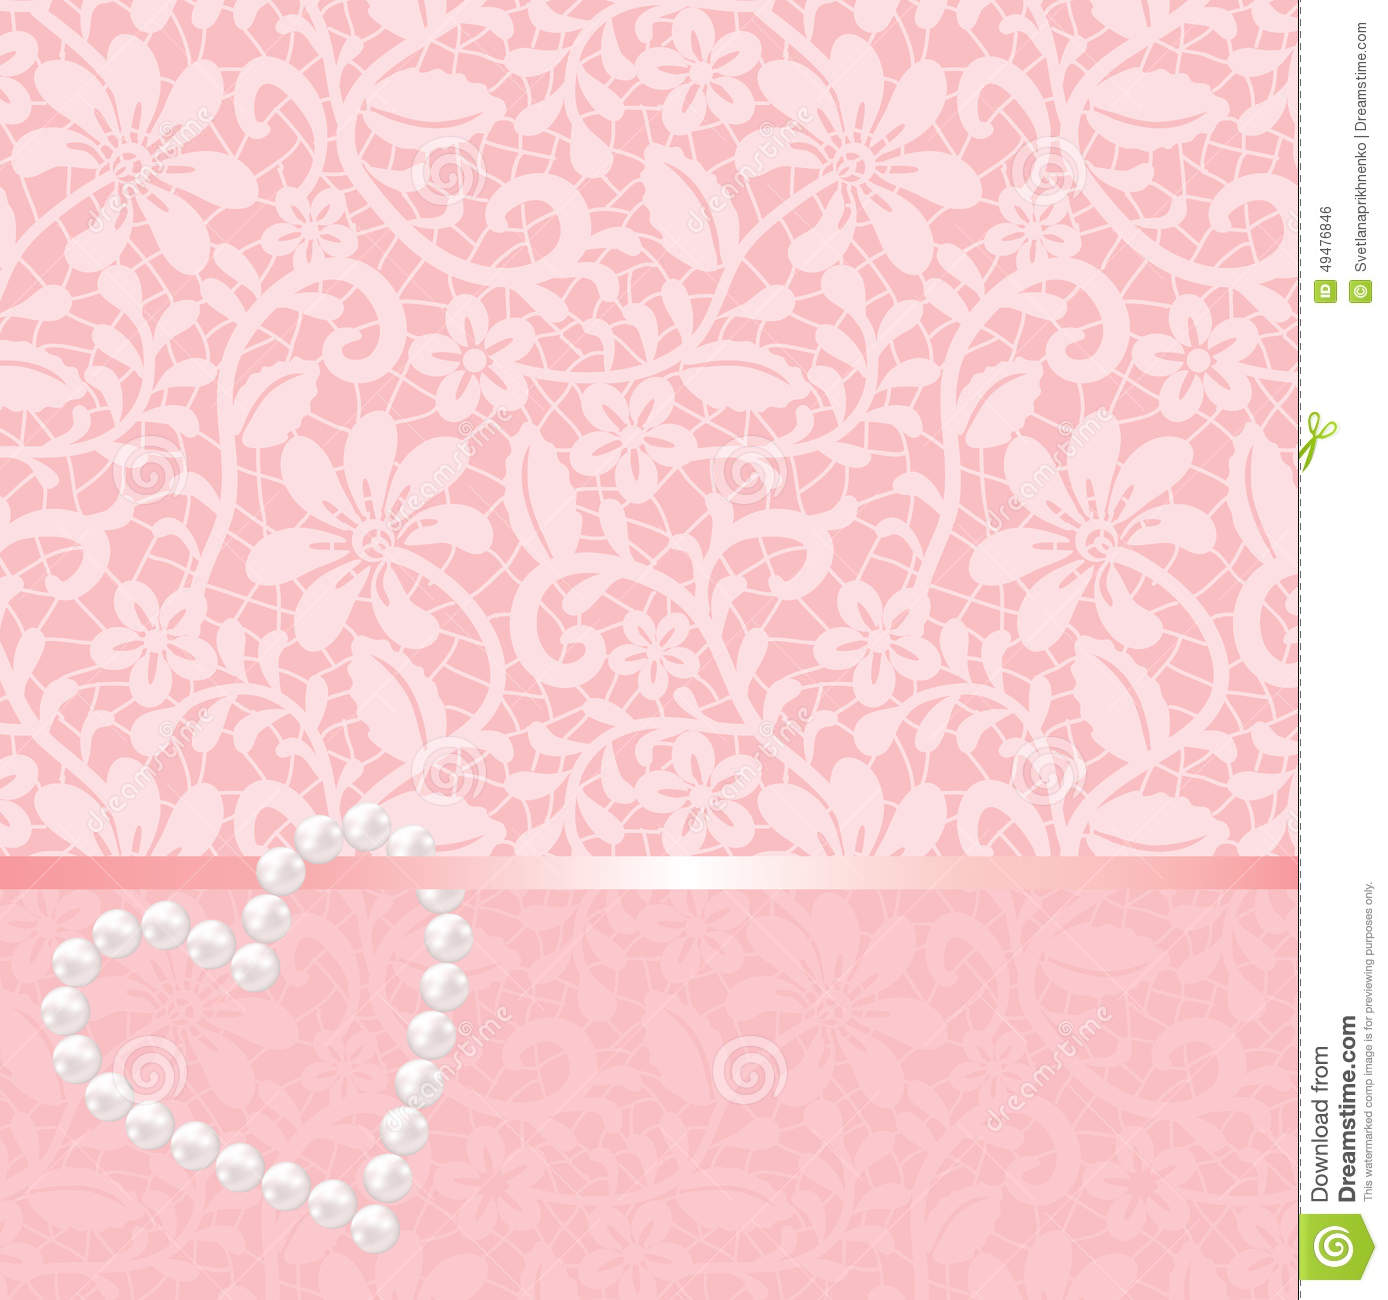 lace pearls pink wallpaper - photo #5